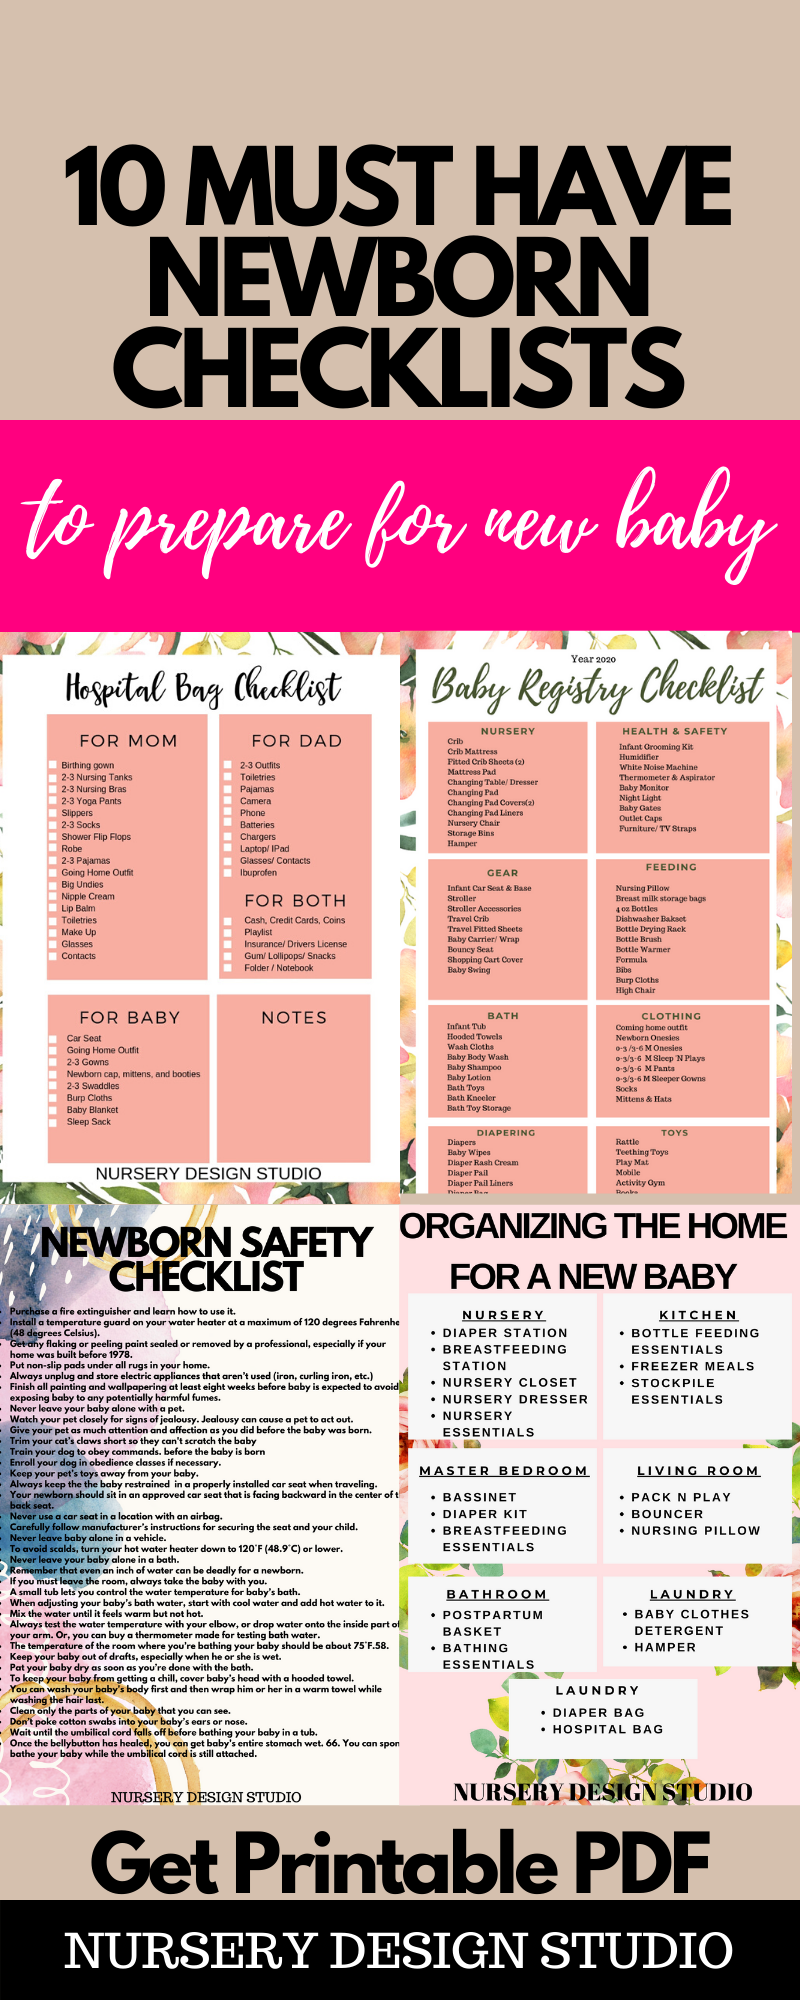 10 MUST HAVE NEWBORN CHECKLISTS TO PREPARE FOR A BABY